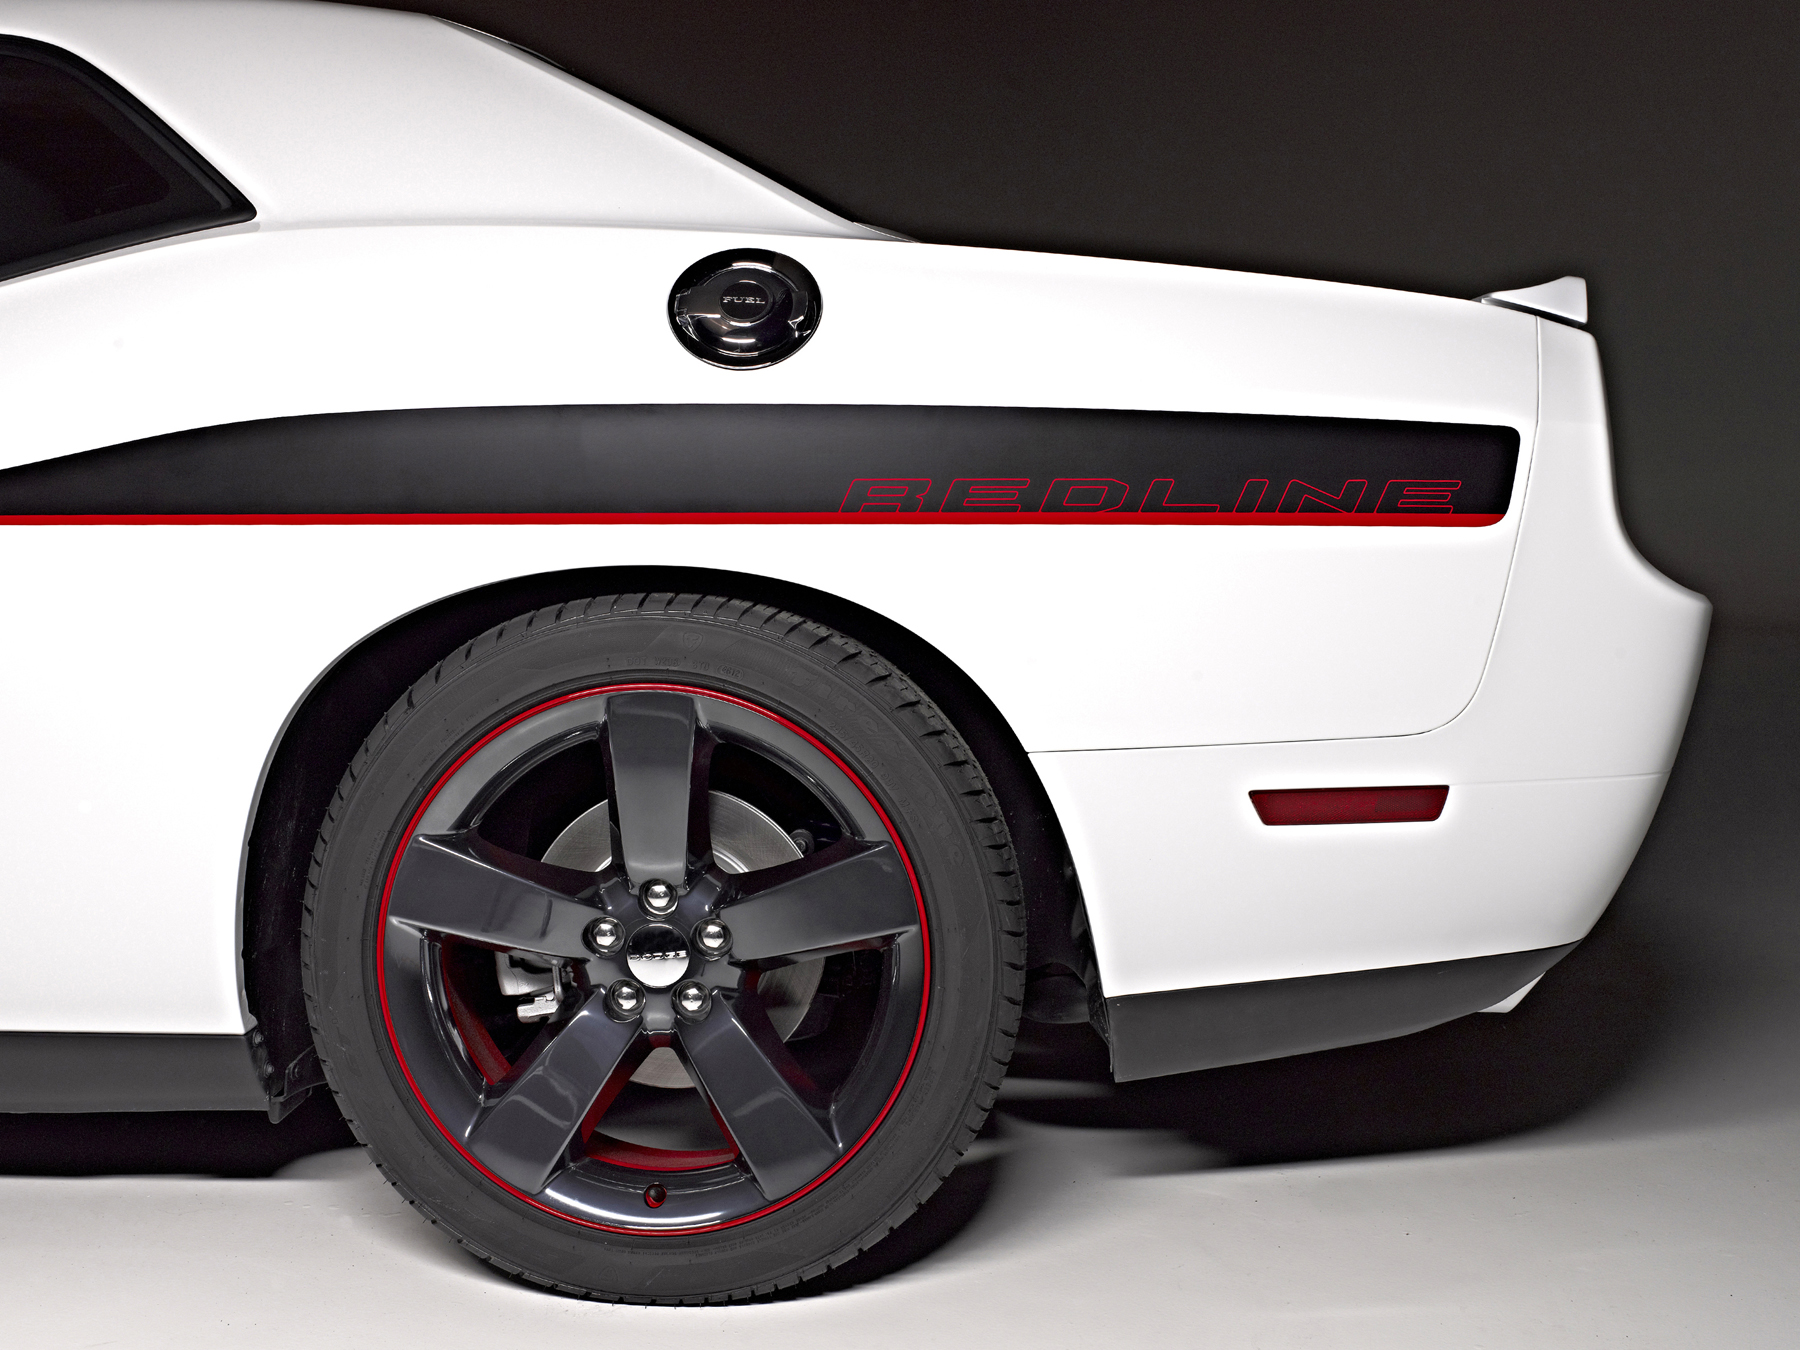 2014 dodge challenger r t redline new car reviews grassroots motorsports. Black Bedroom Furniture Sets. Home Design Ideas